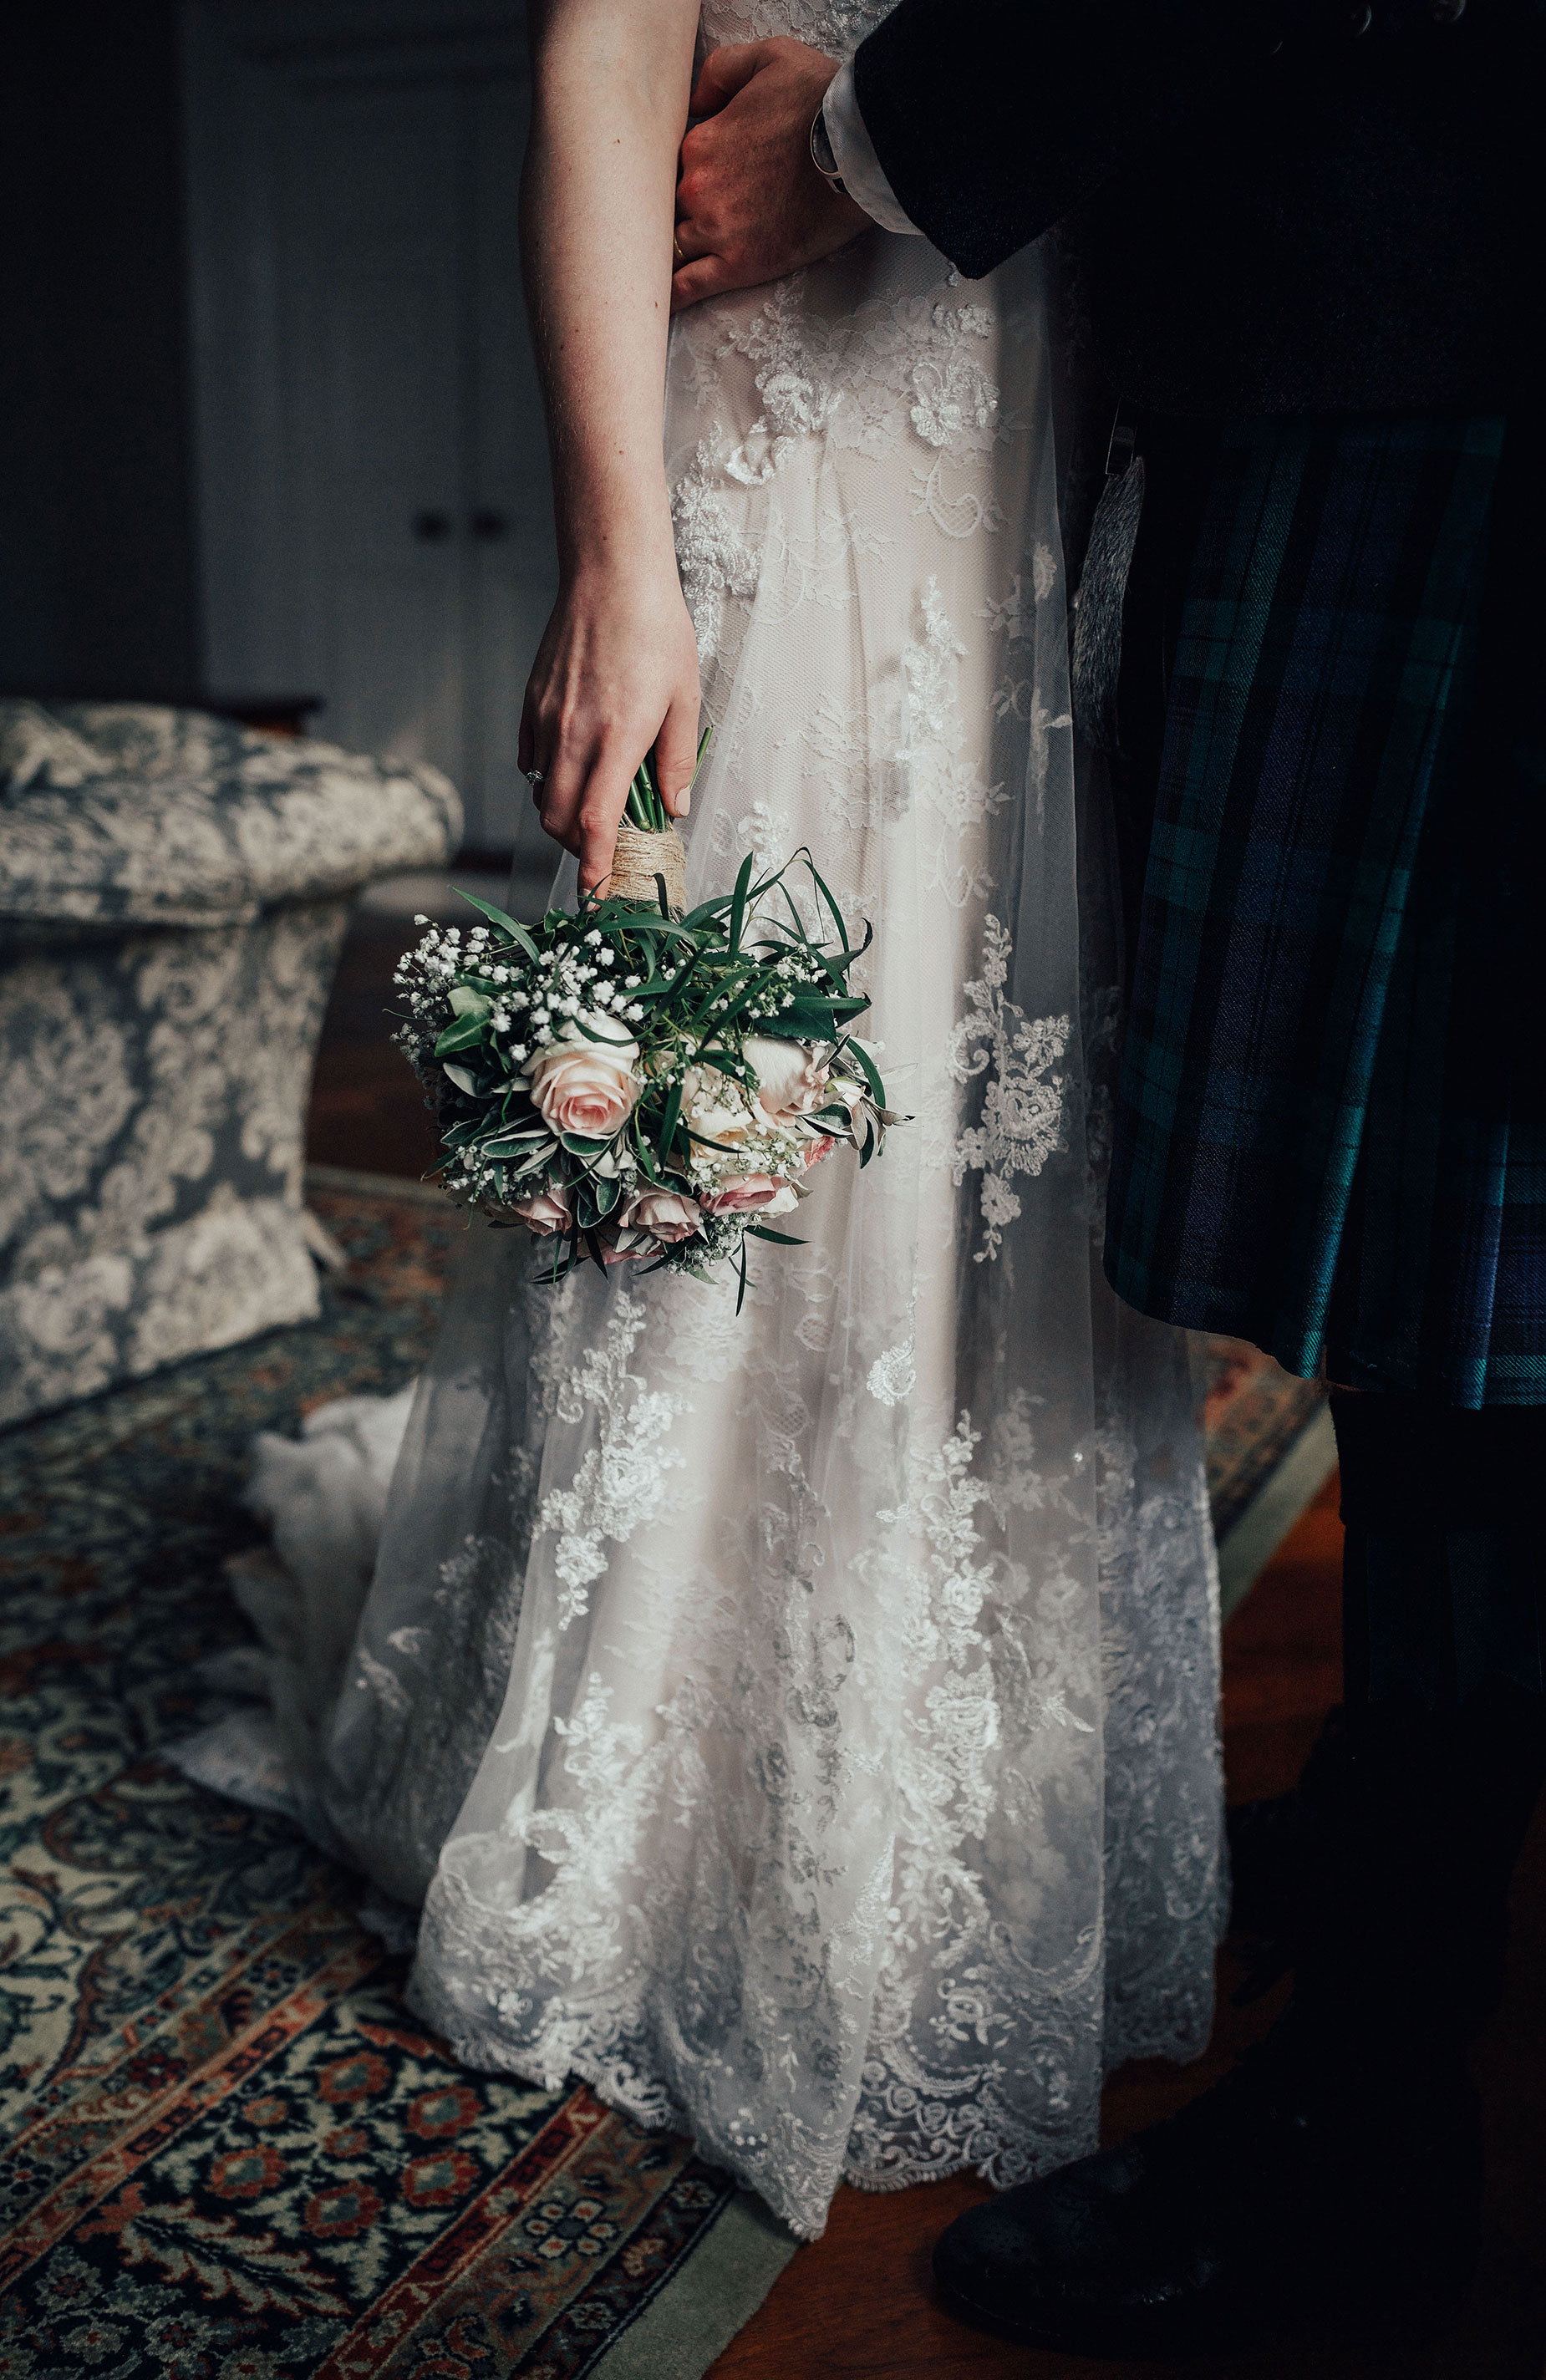 BOTURICH_CASTLE_WEDDING_PHOTOGRAPHER_PJ_PHILLIPS_PHOTOGRAPHY_101.jpg